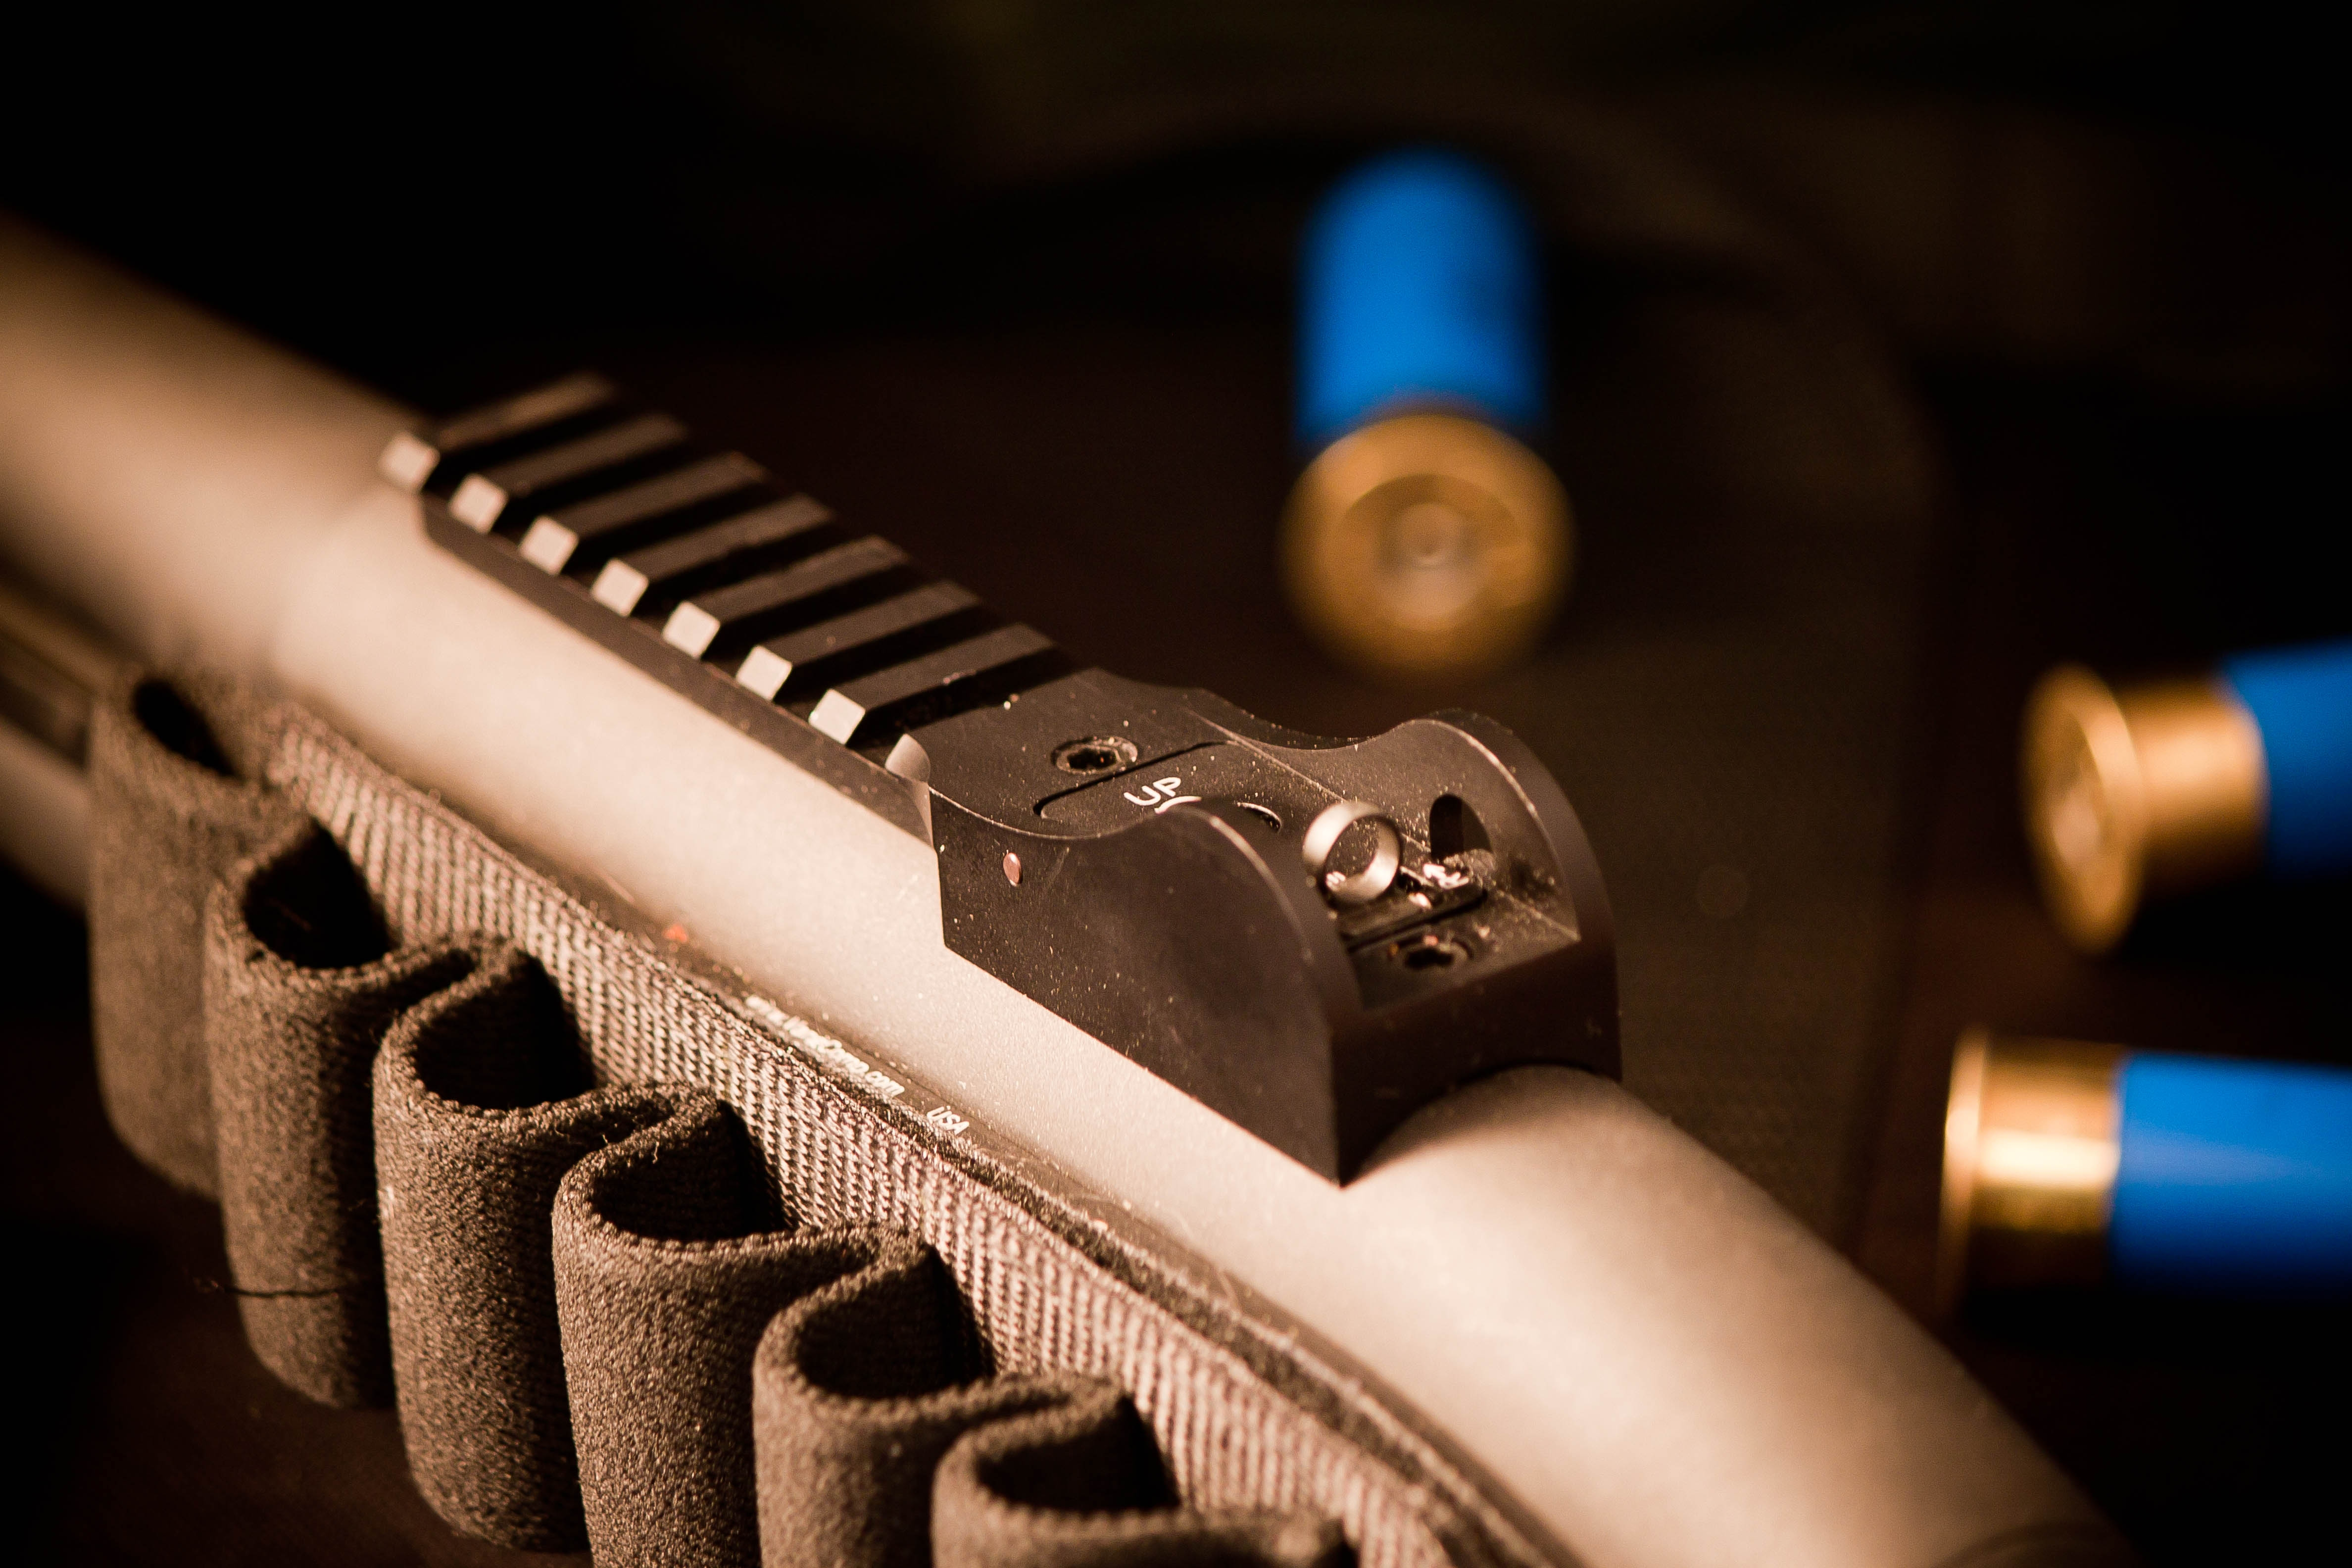 Ready to Rumble: Vang Comp Systems Remington 870 | S W A T